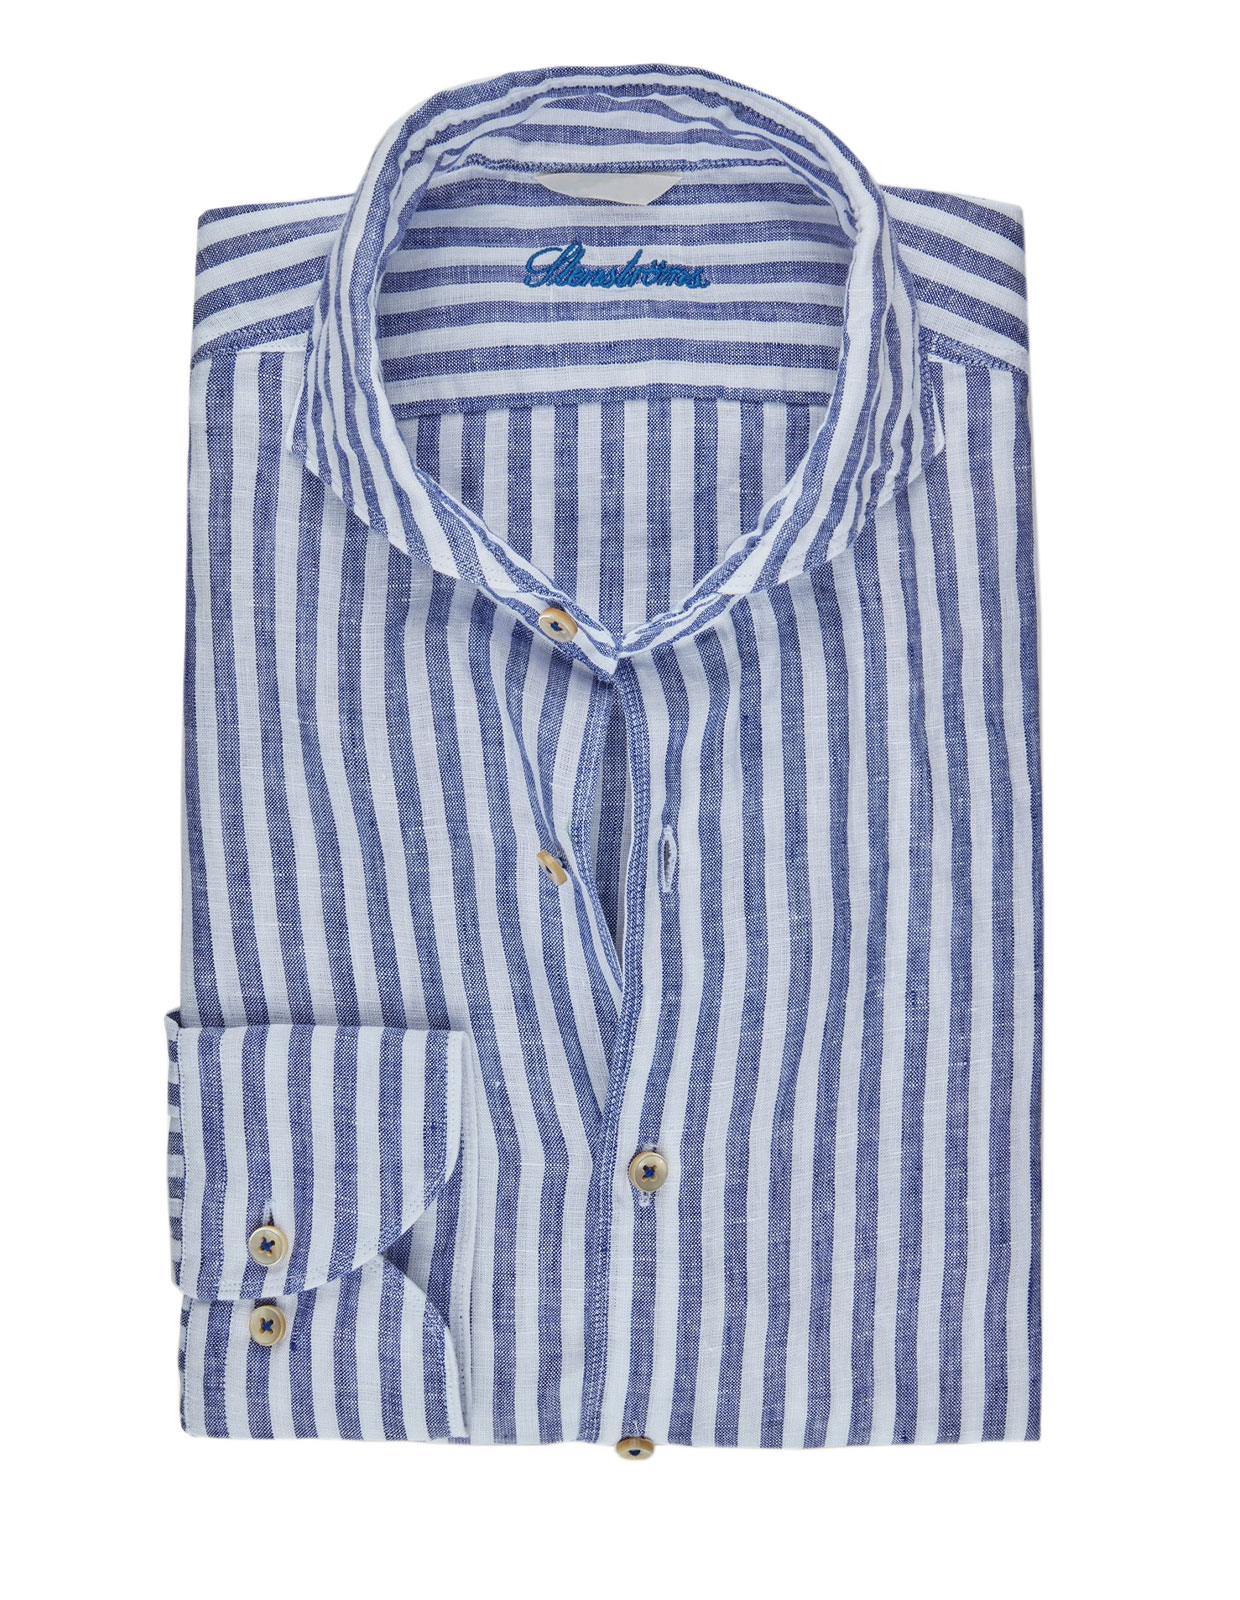 Fitted Body Shirt Striped Linen Navy/White